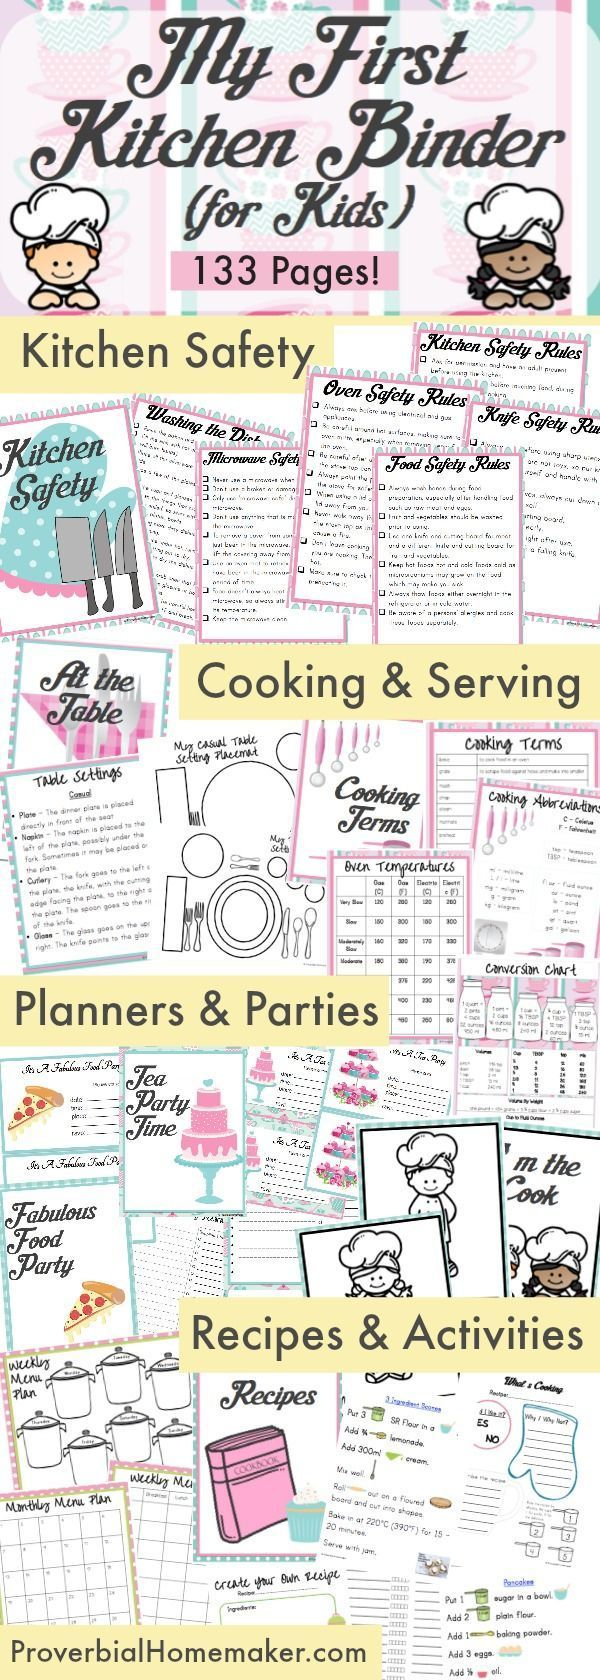 133 page binder to teach kids in the kitchen! Do you have a little cook in training? Kids love to work in the kitchen and My First Kitchen Binder for Kids is perfect for helping them get started! Your child will not only have a helpful tool but a treasured keepsake to enjoy for years to come.